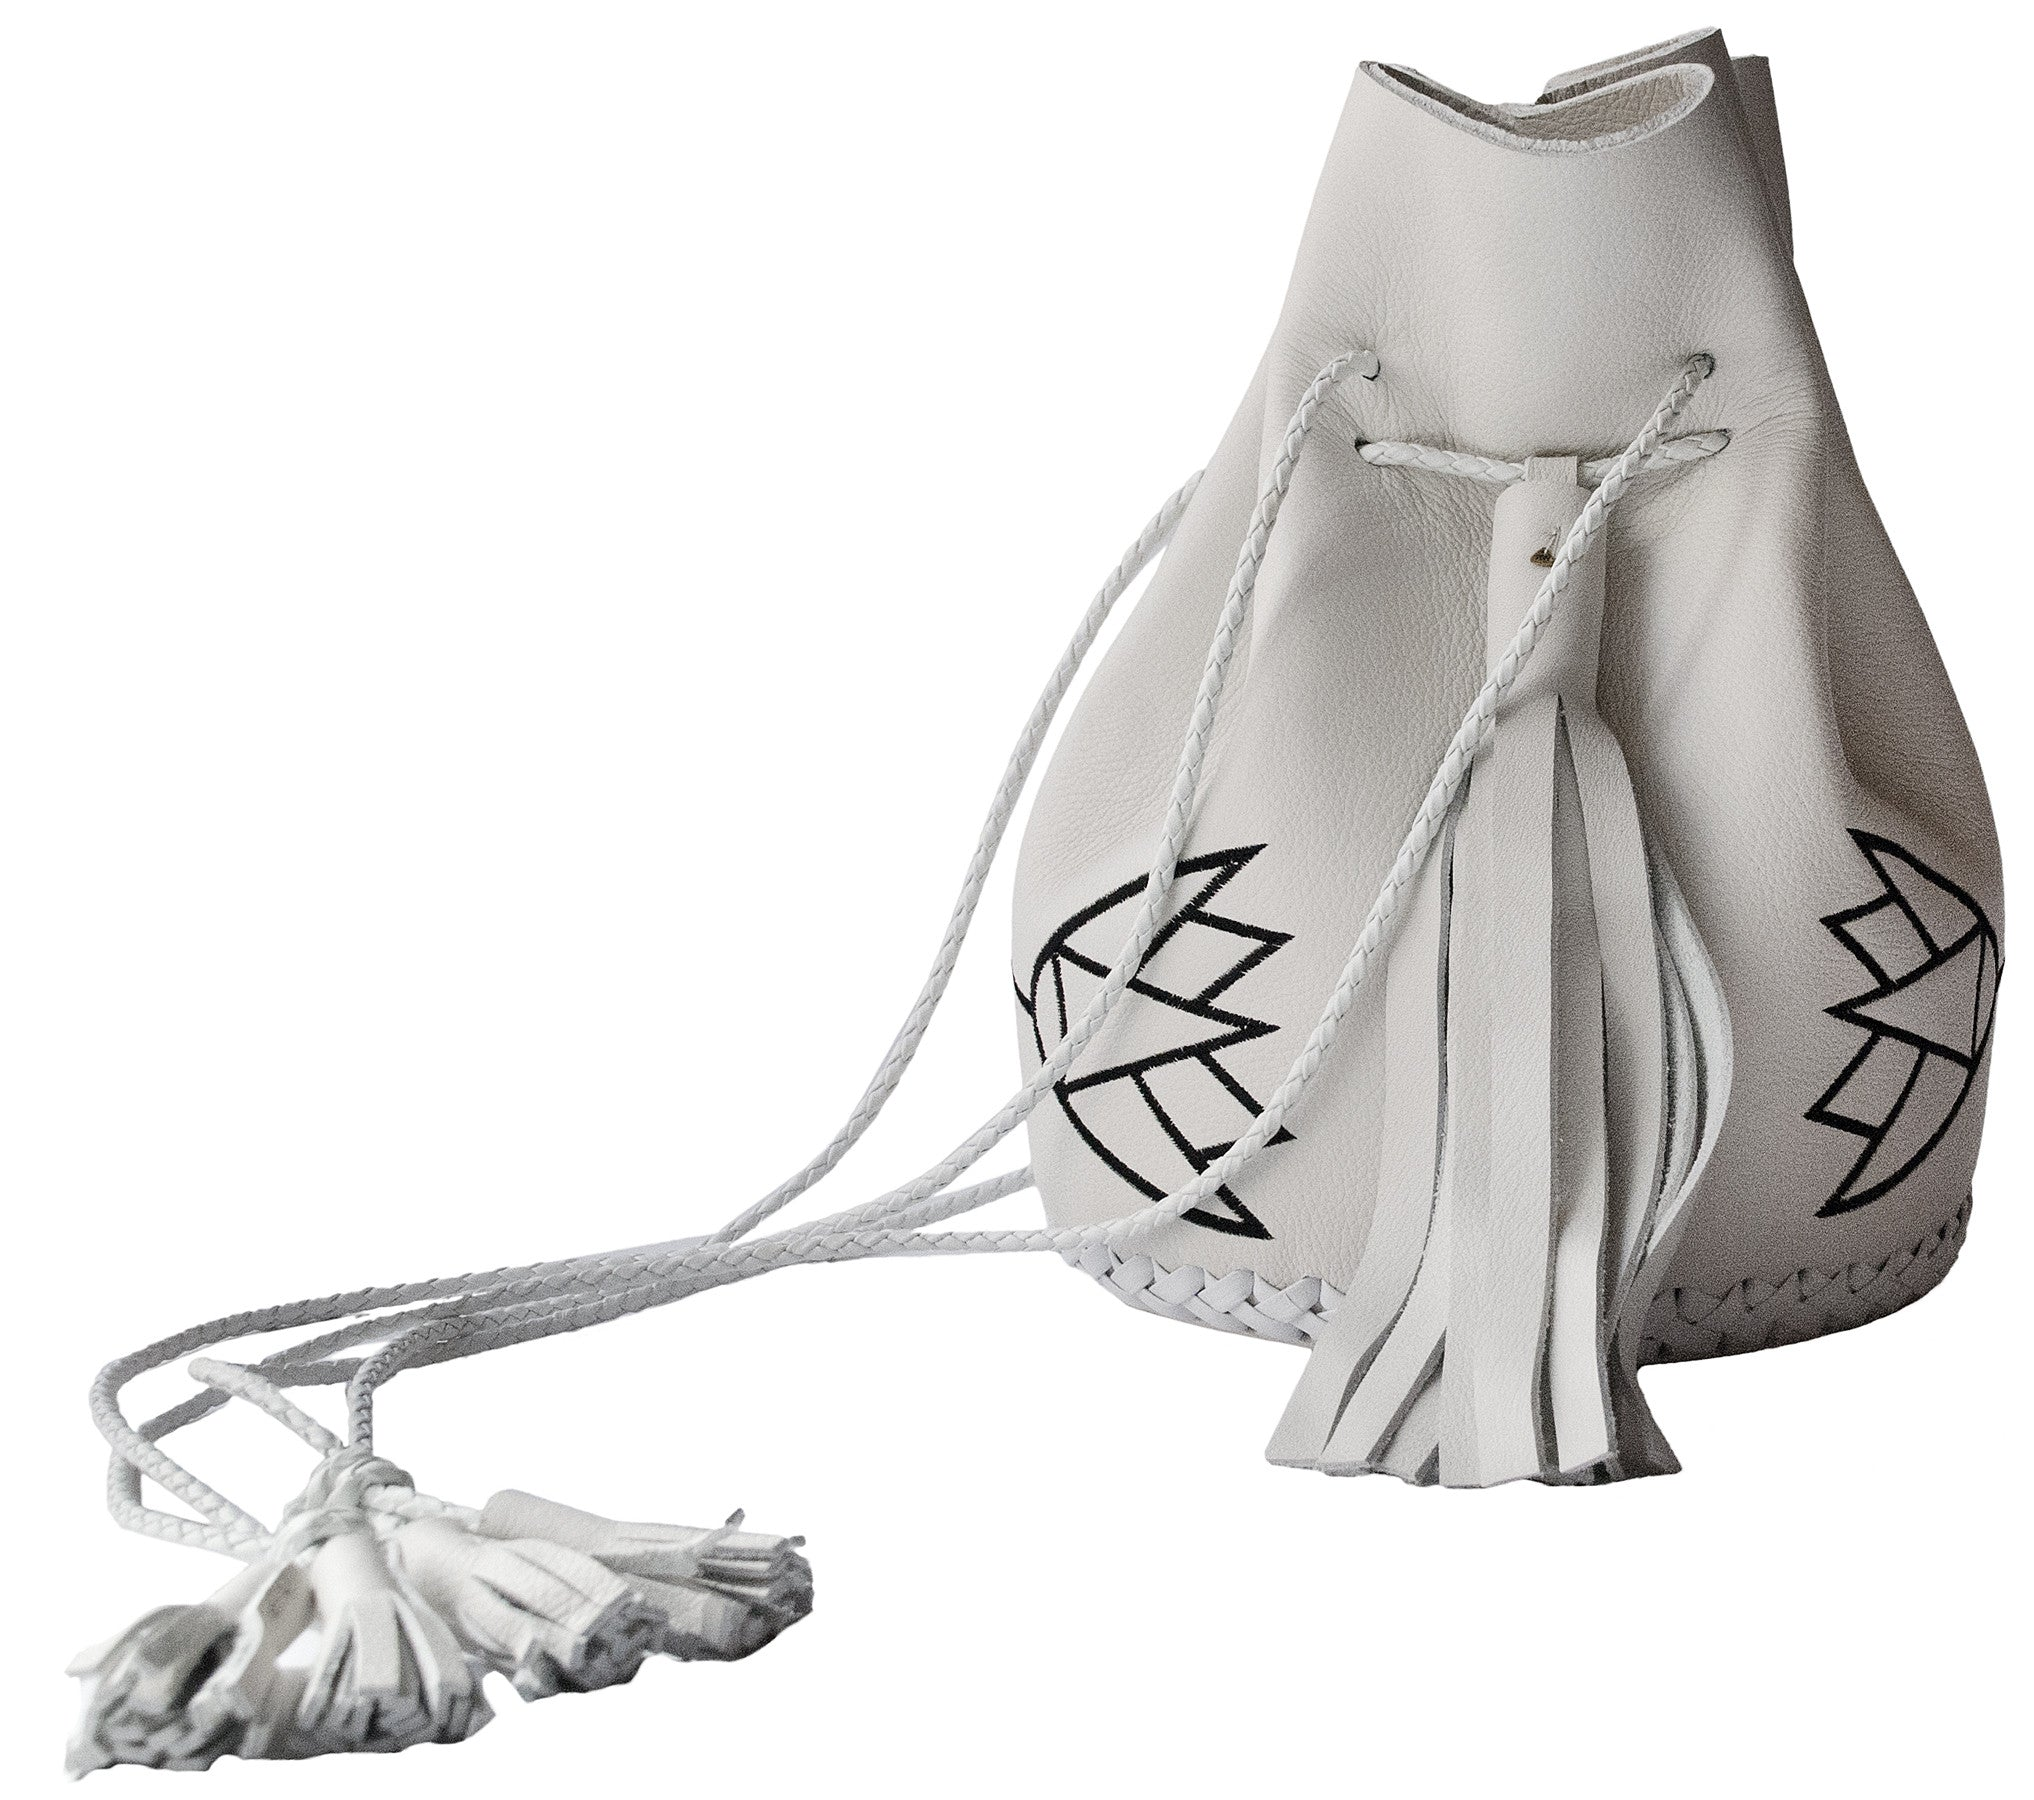 Embroidered Egyptian Lotus Leather Bullet Bag Wendy Nichol Handbag Purse Designer Handmade in NYC Bucket Bag White Black